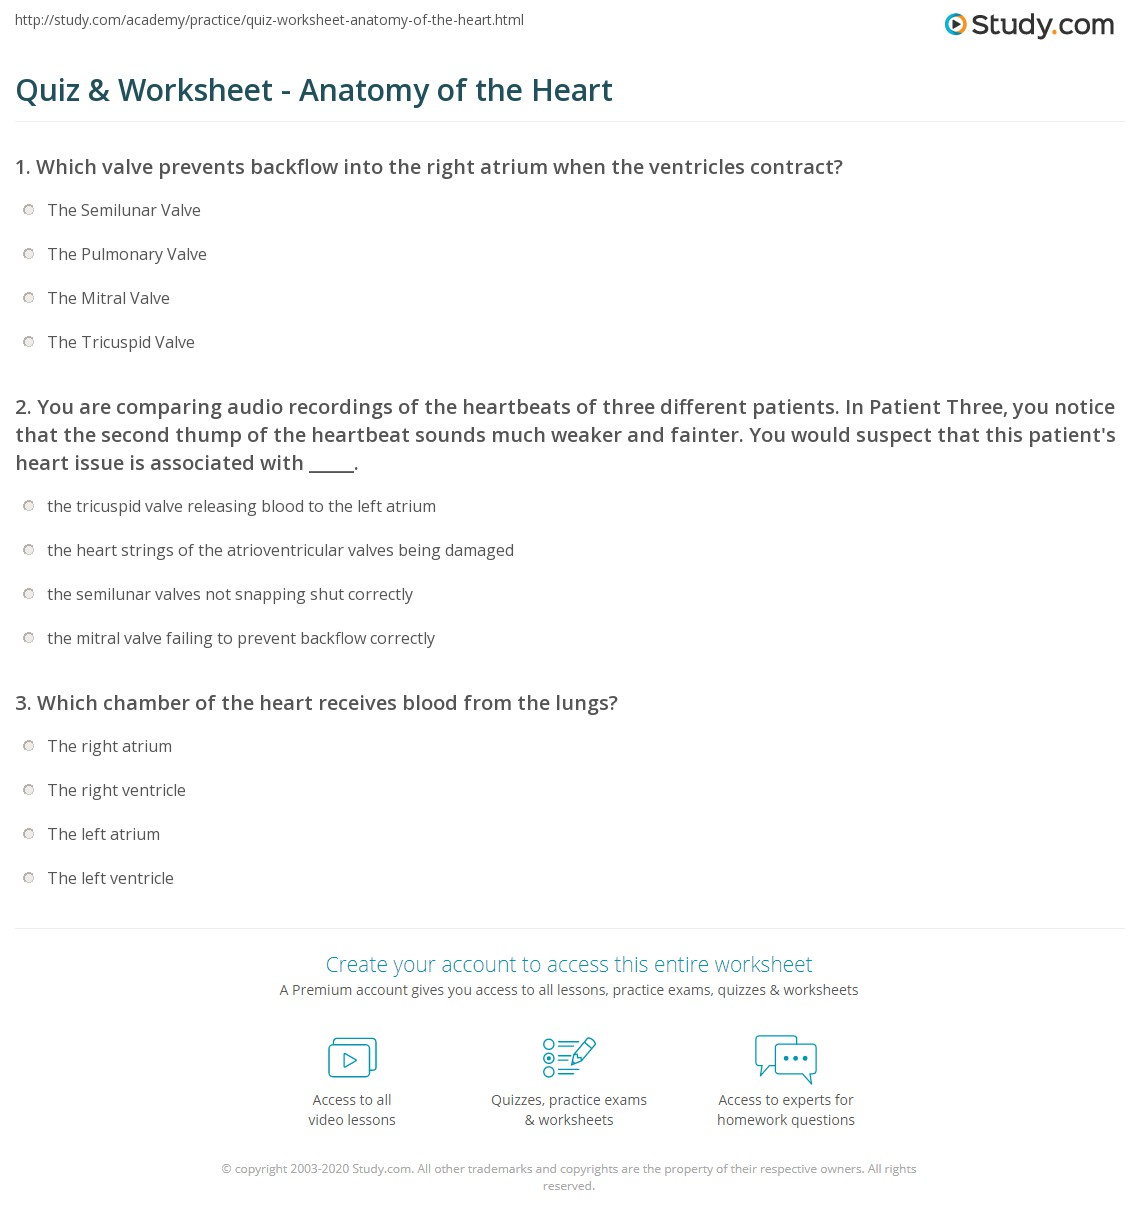 Quiz & Worksheet - Anatomy of the Heart | Study.com